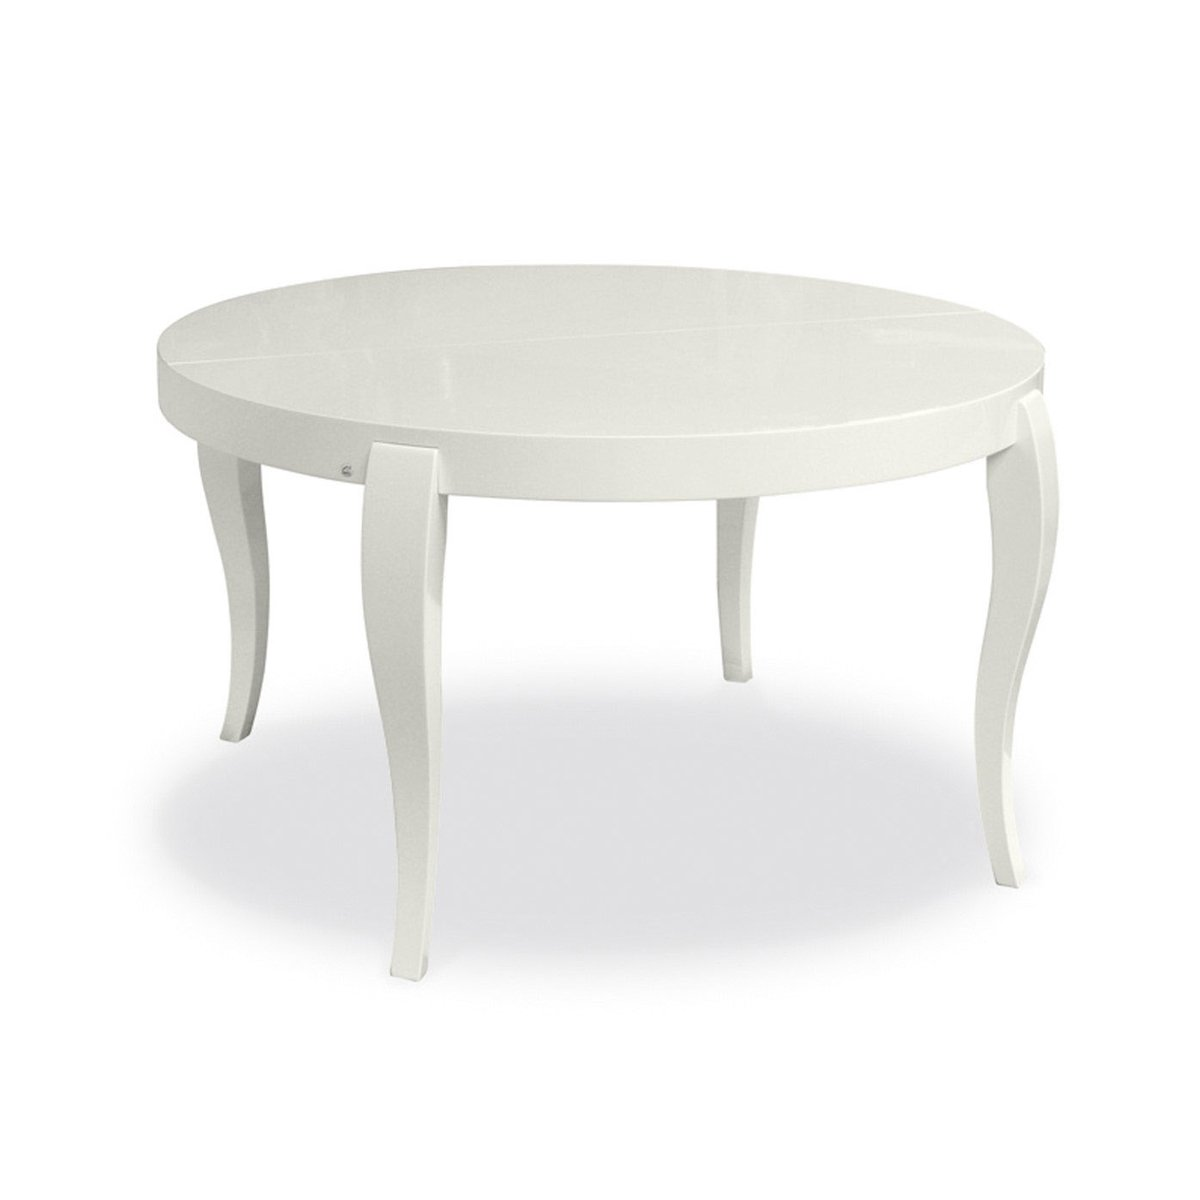 Table de repas extensible ronde regency meubles et for Table ronde laquee blanc extensible